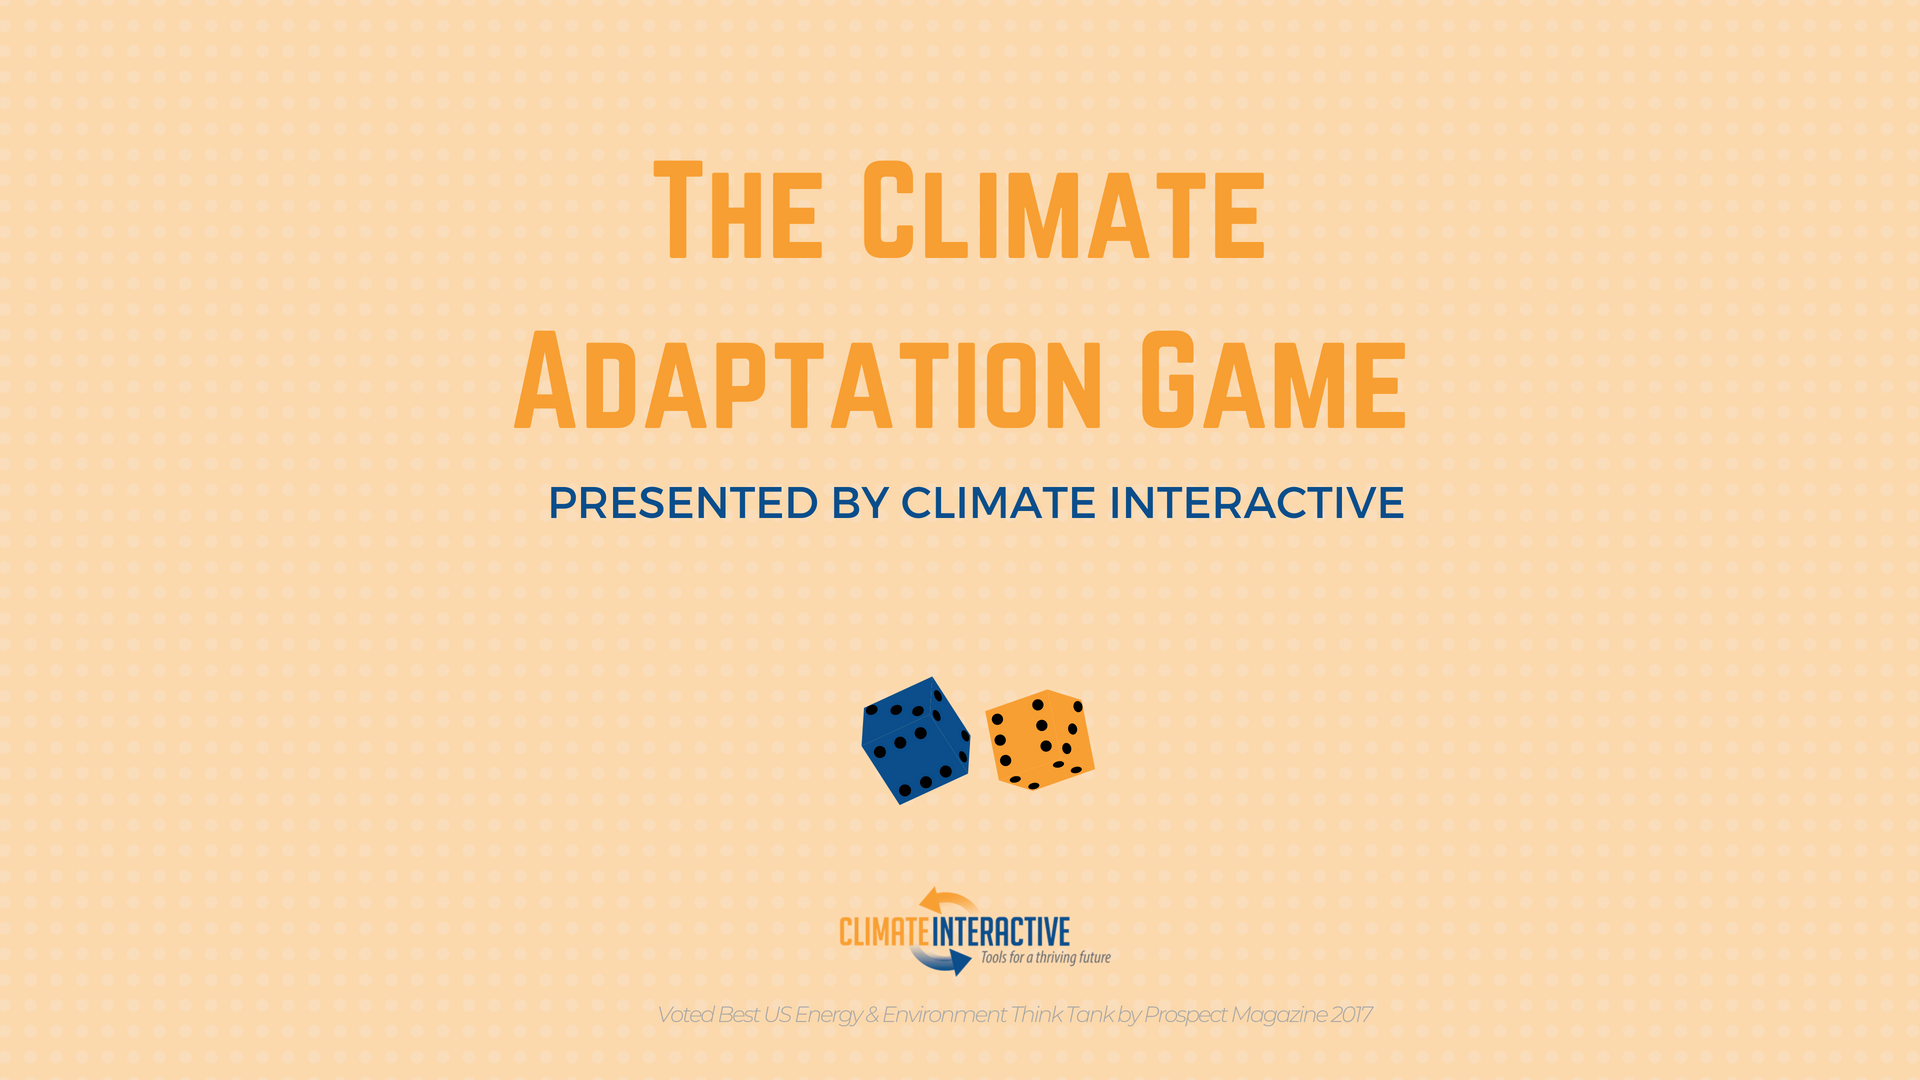 The Climate Adaptation Game